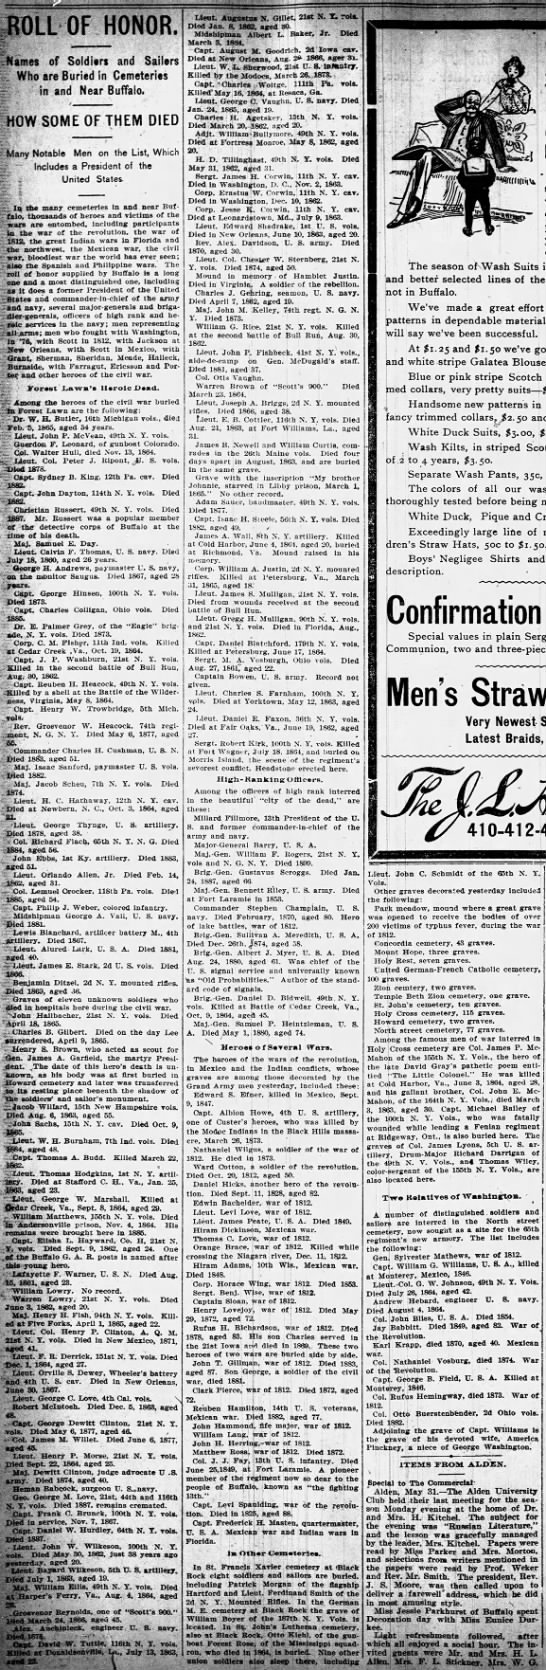 Roll of Honor, The Buffalo Commercial, (Buffalo, New York) May 31, 1900, page 8 -